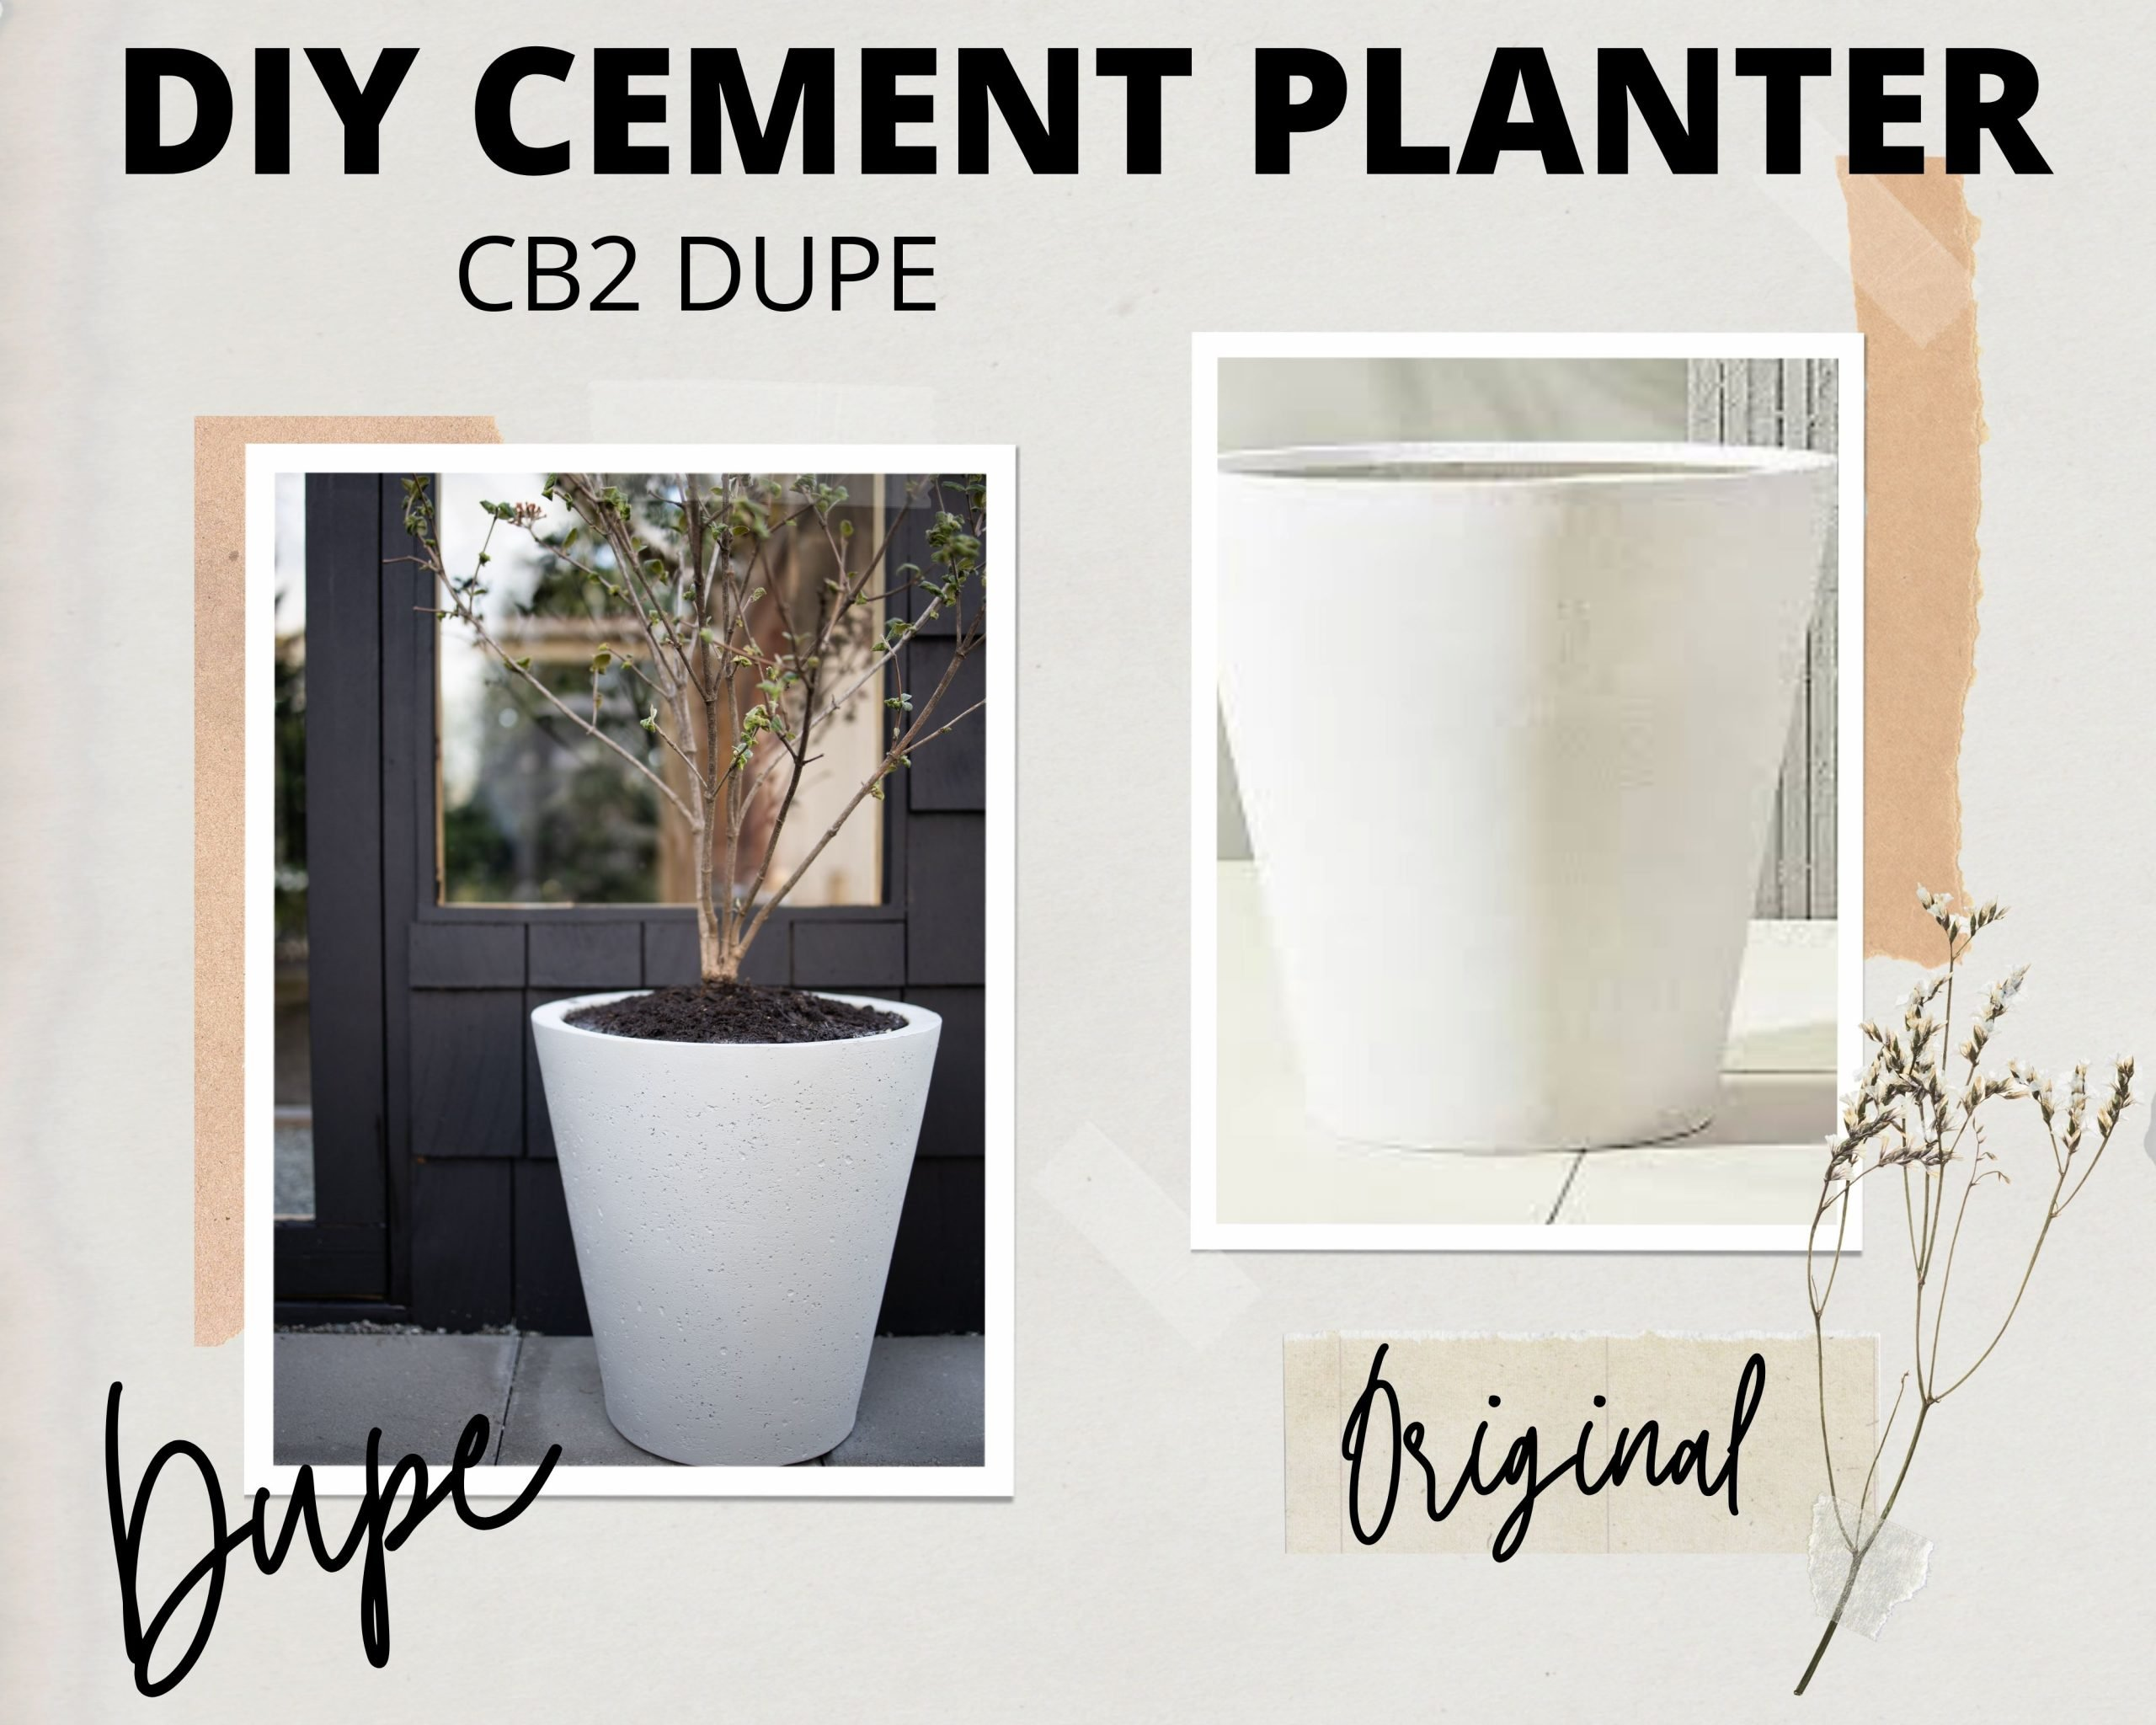 DIY Cement Planters - CB2 Inspired. How I DIY'd these plastic planters in under 30 minutes. Save hundreds on these cement planter dupes.